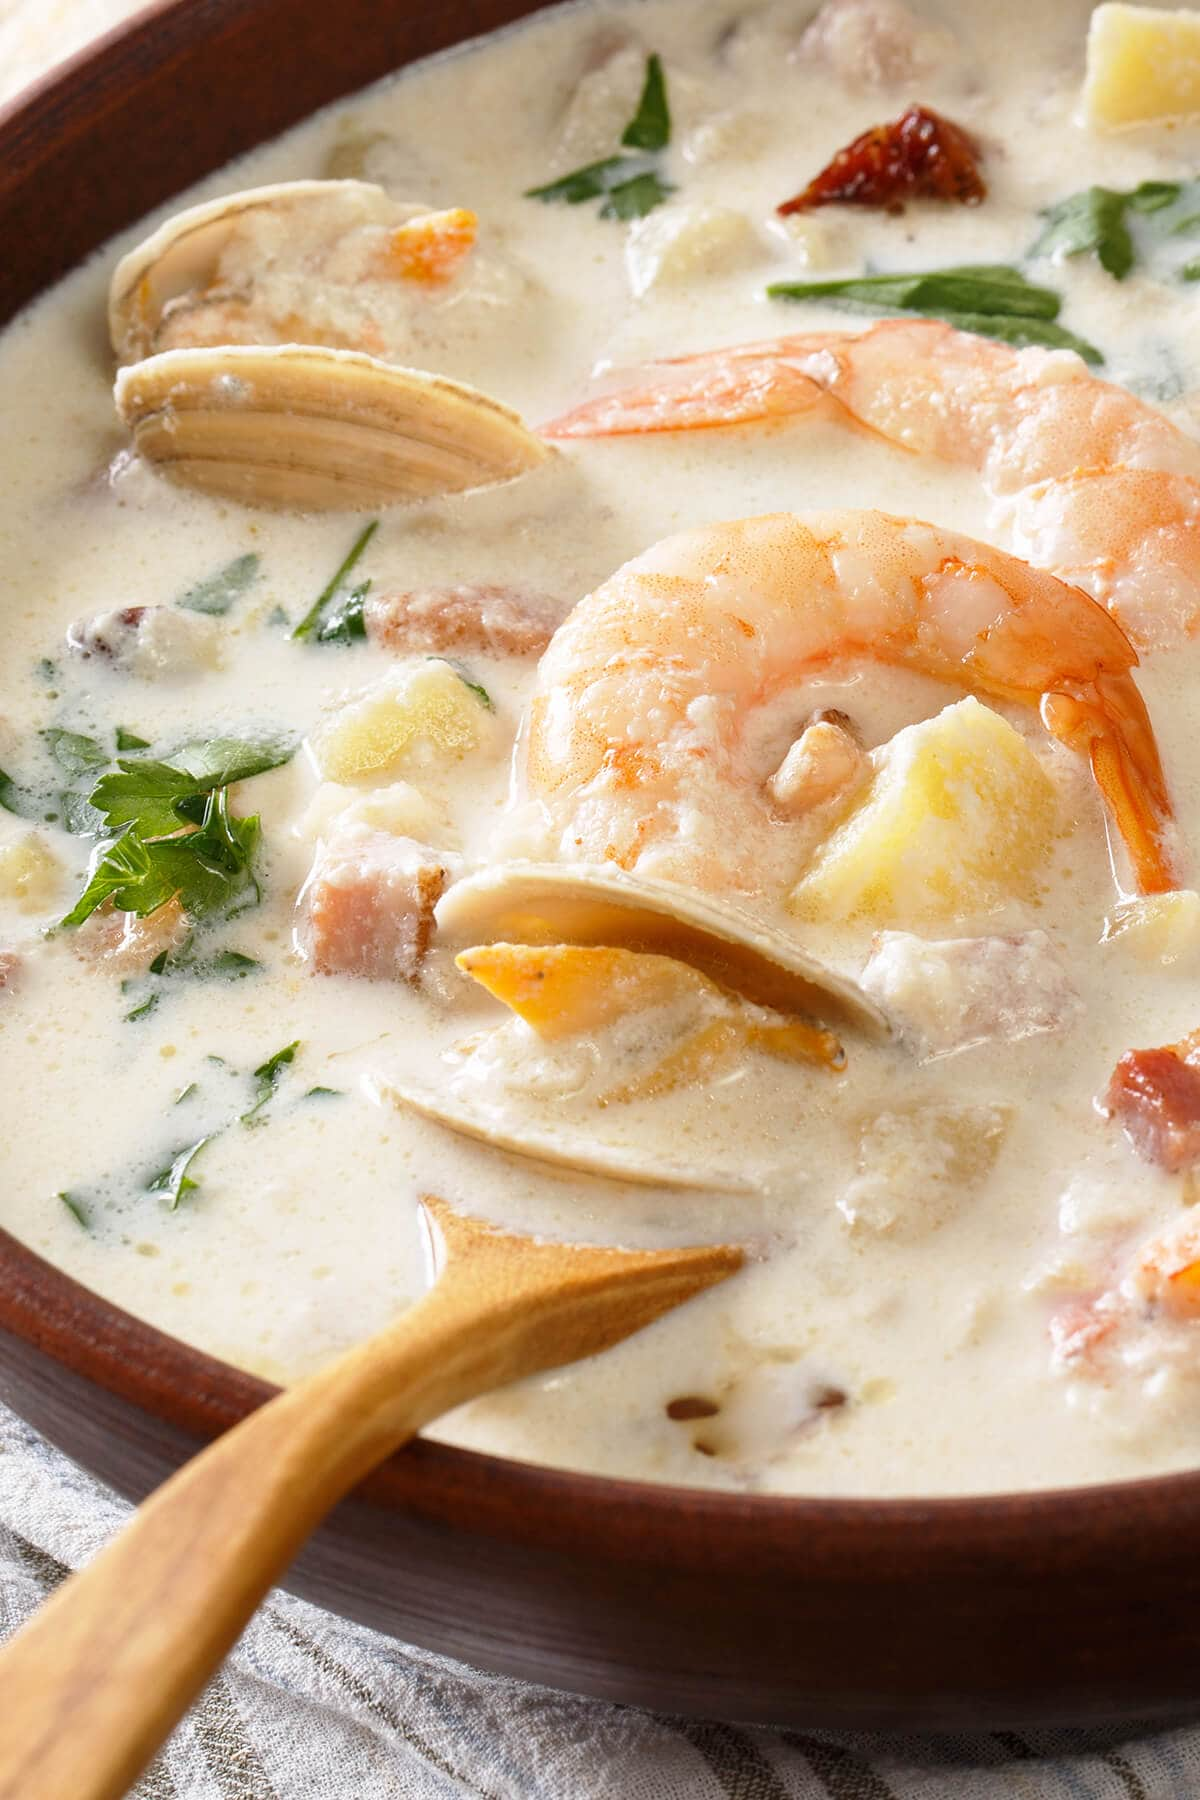 Close up of seafood chowder with mussels and shrimp